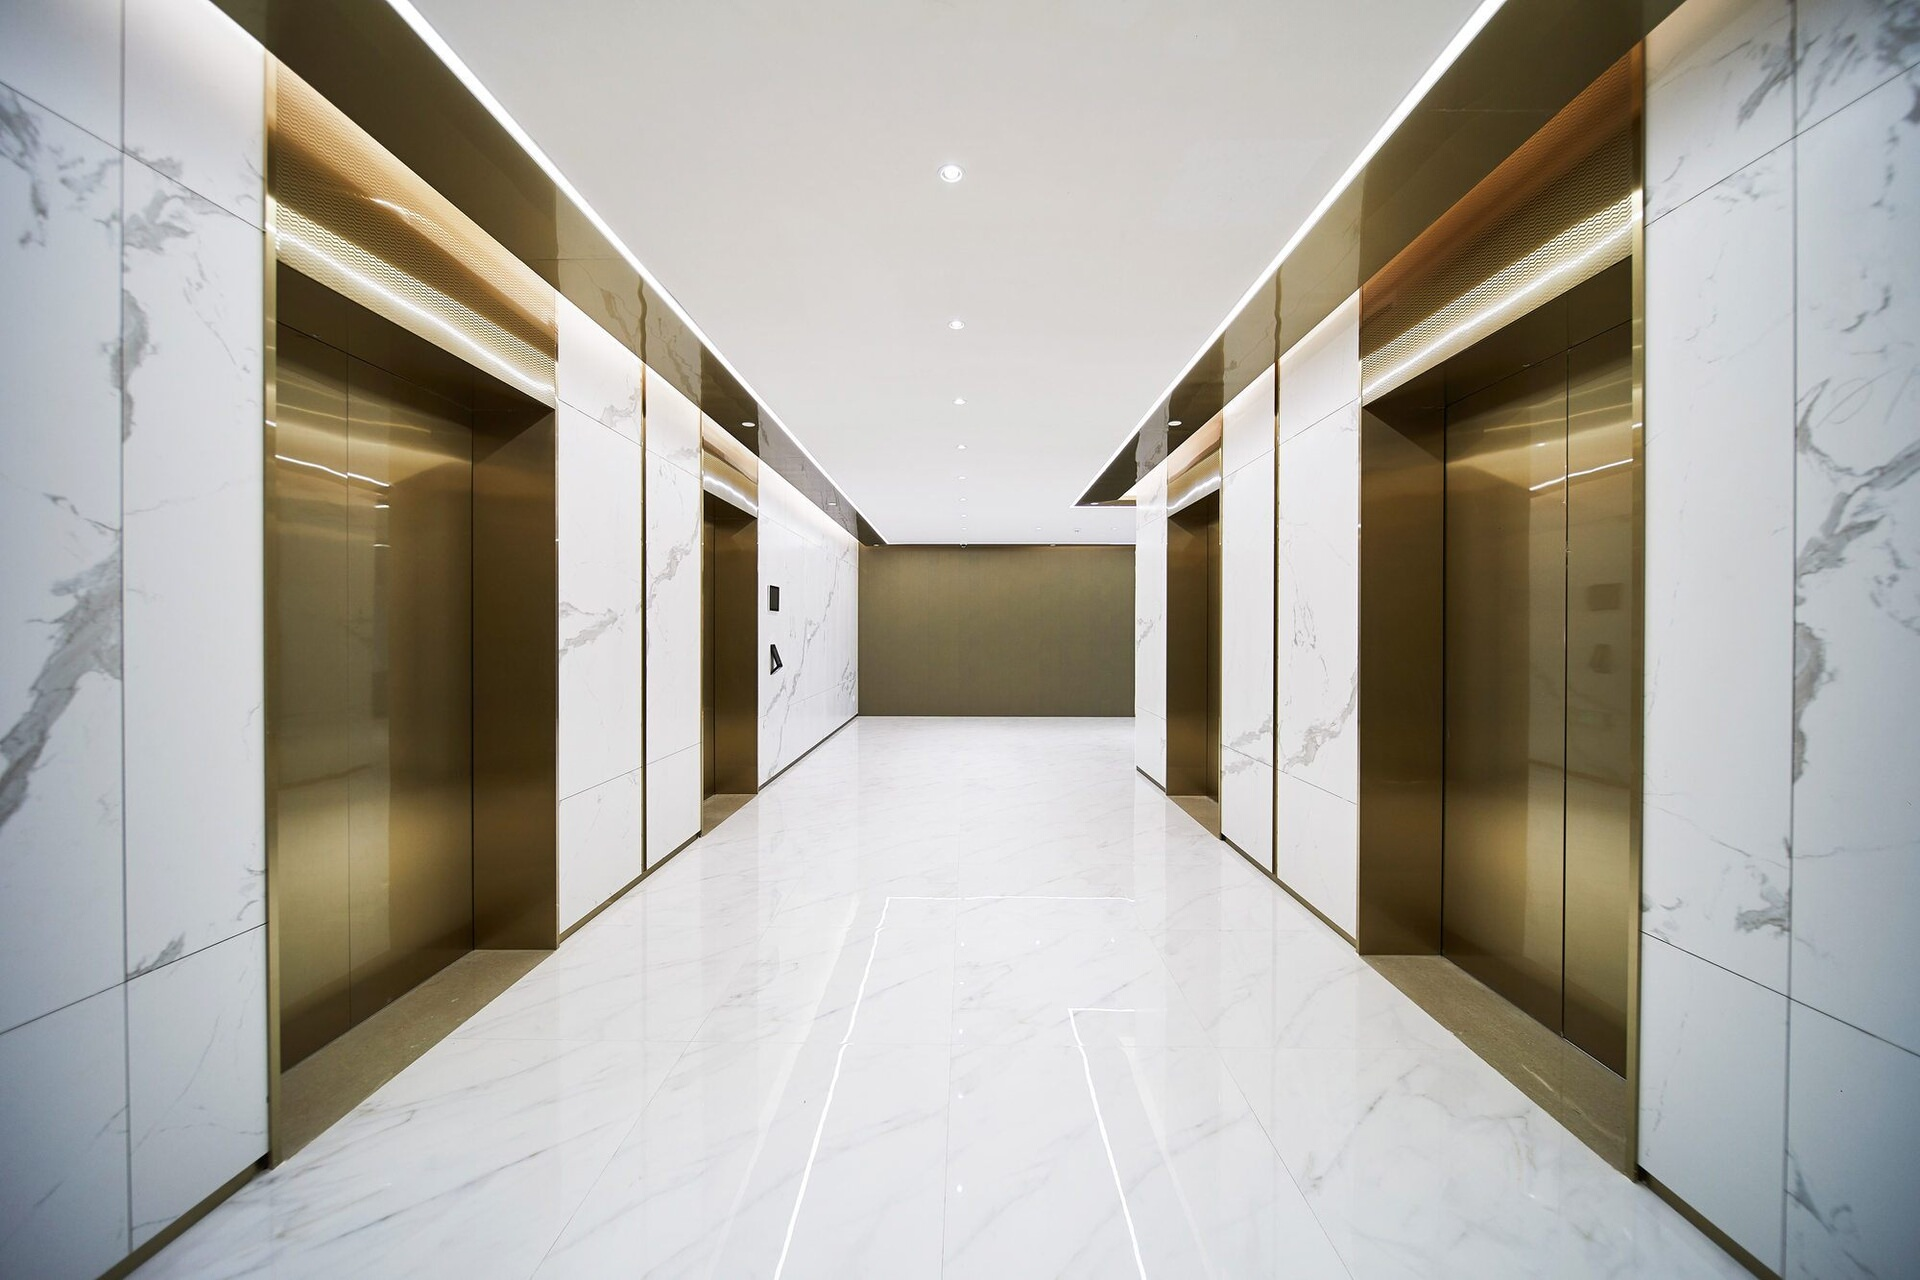 A marbled hallway with four gold elevators.